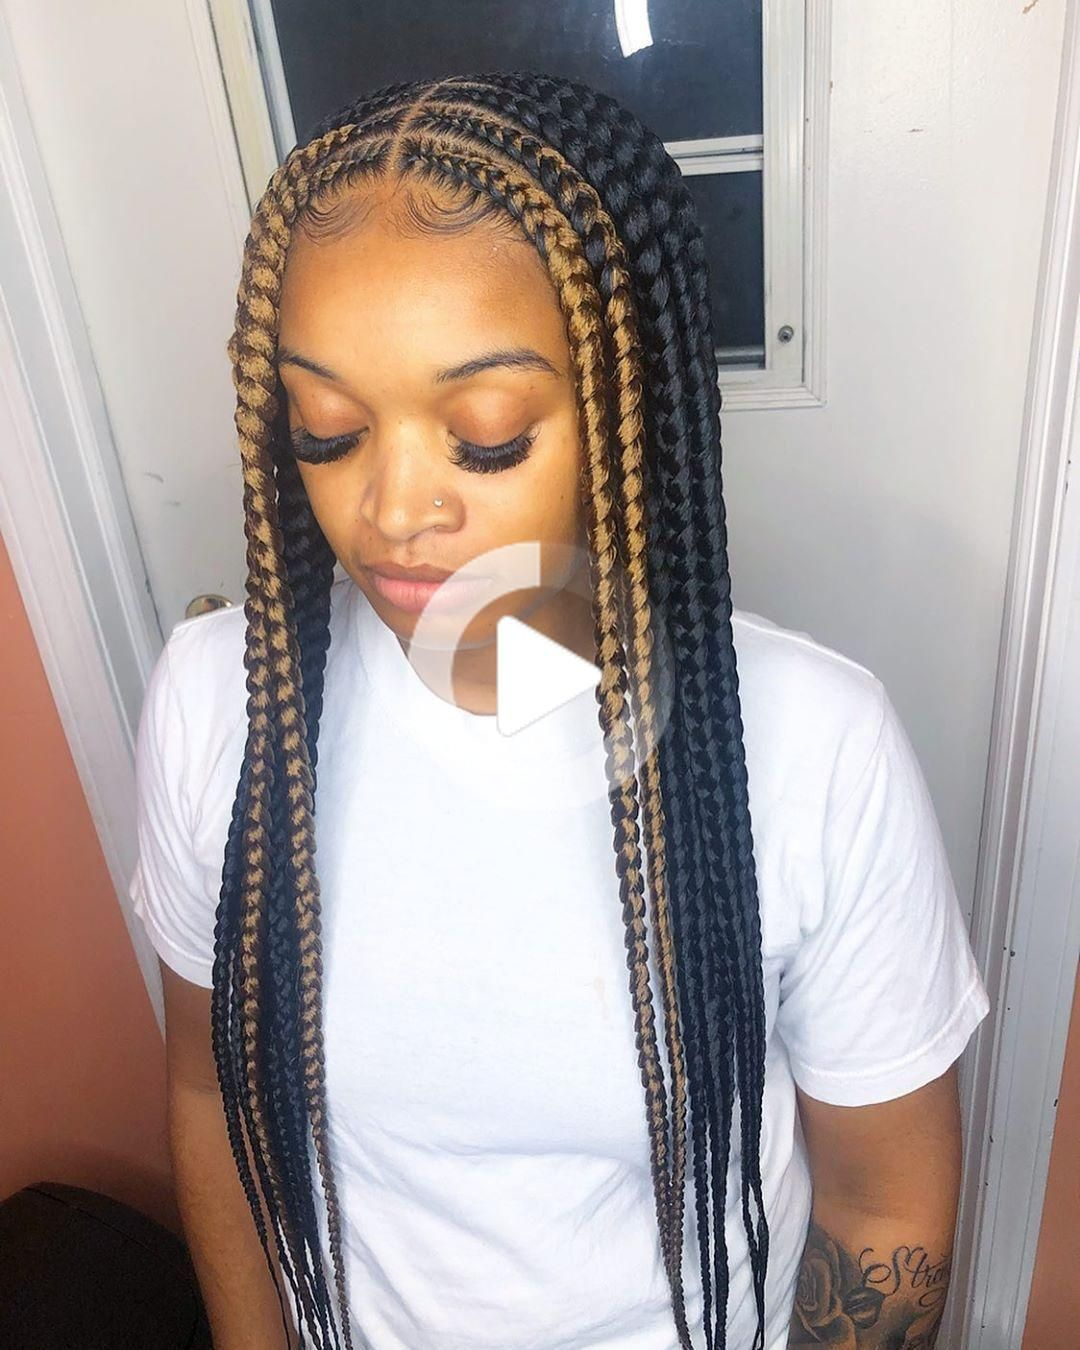 Pin on braided hairstyles   Braided hairstyles, African hair ...